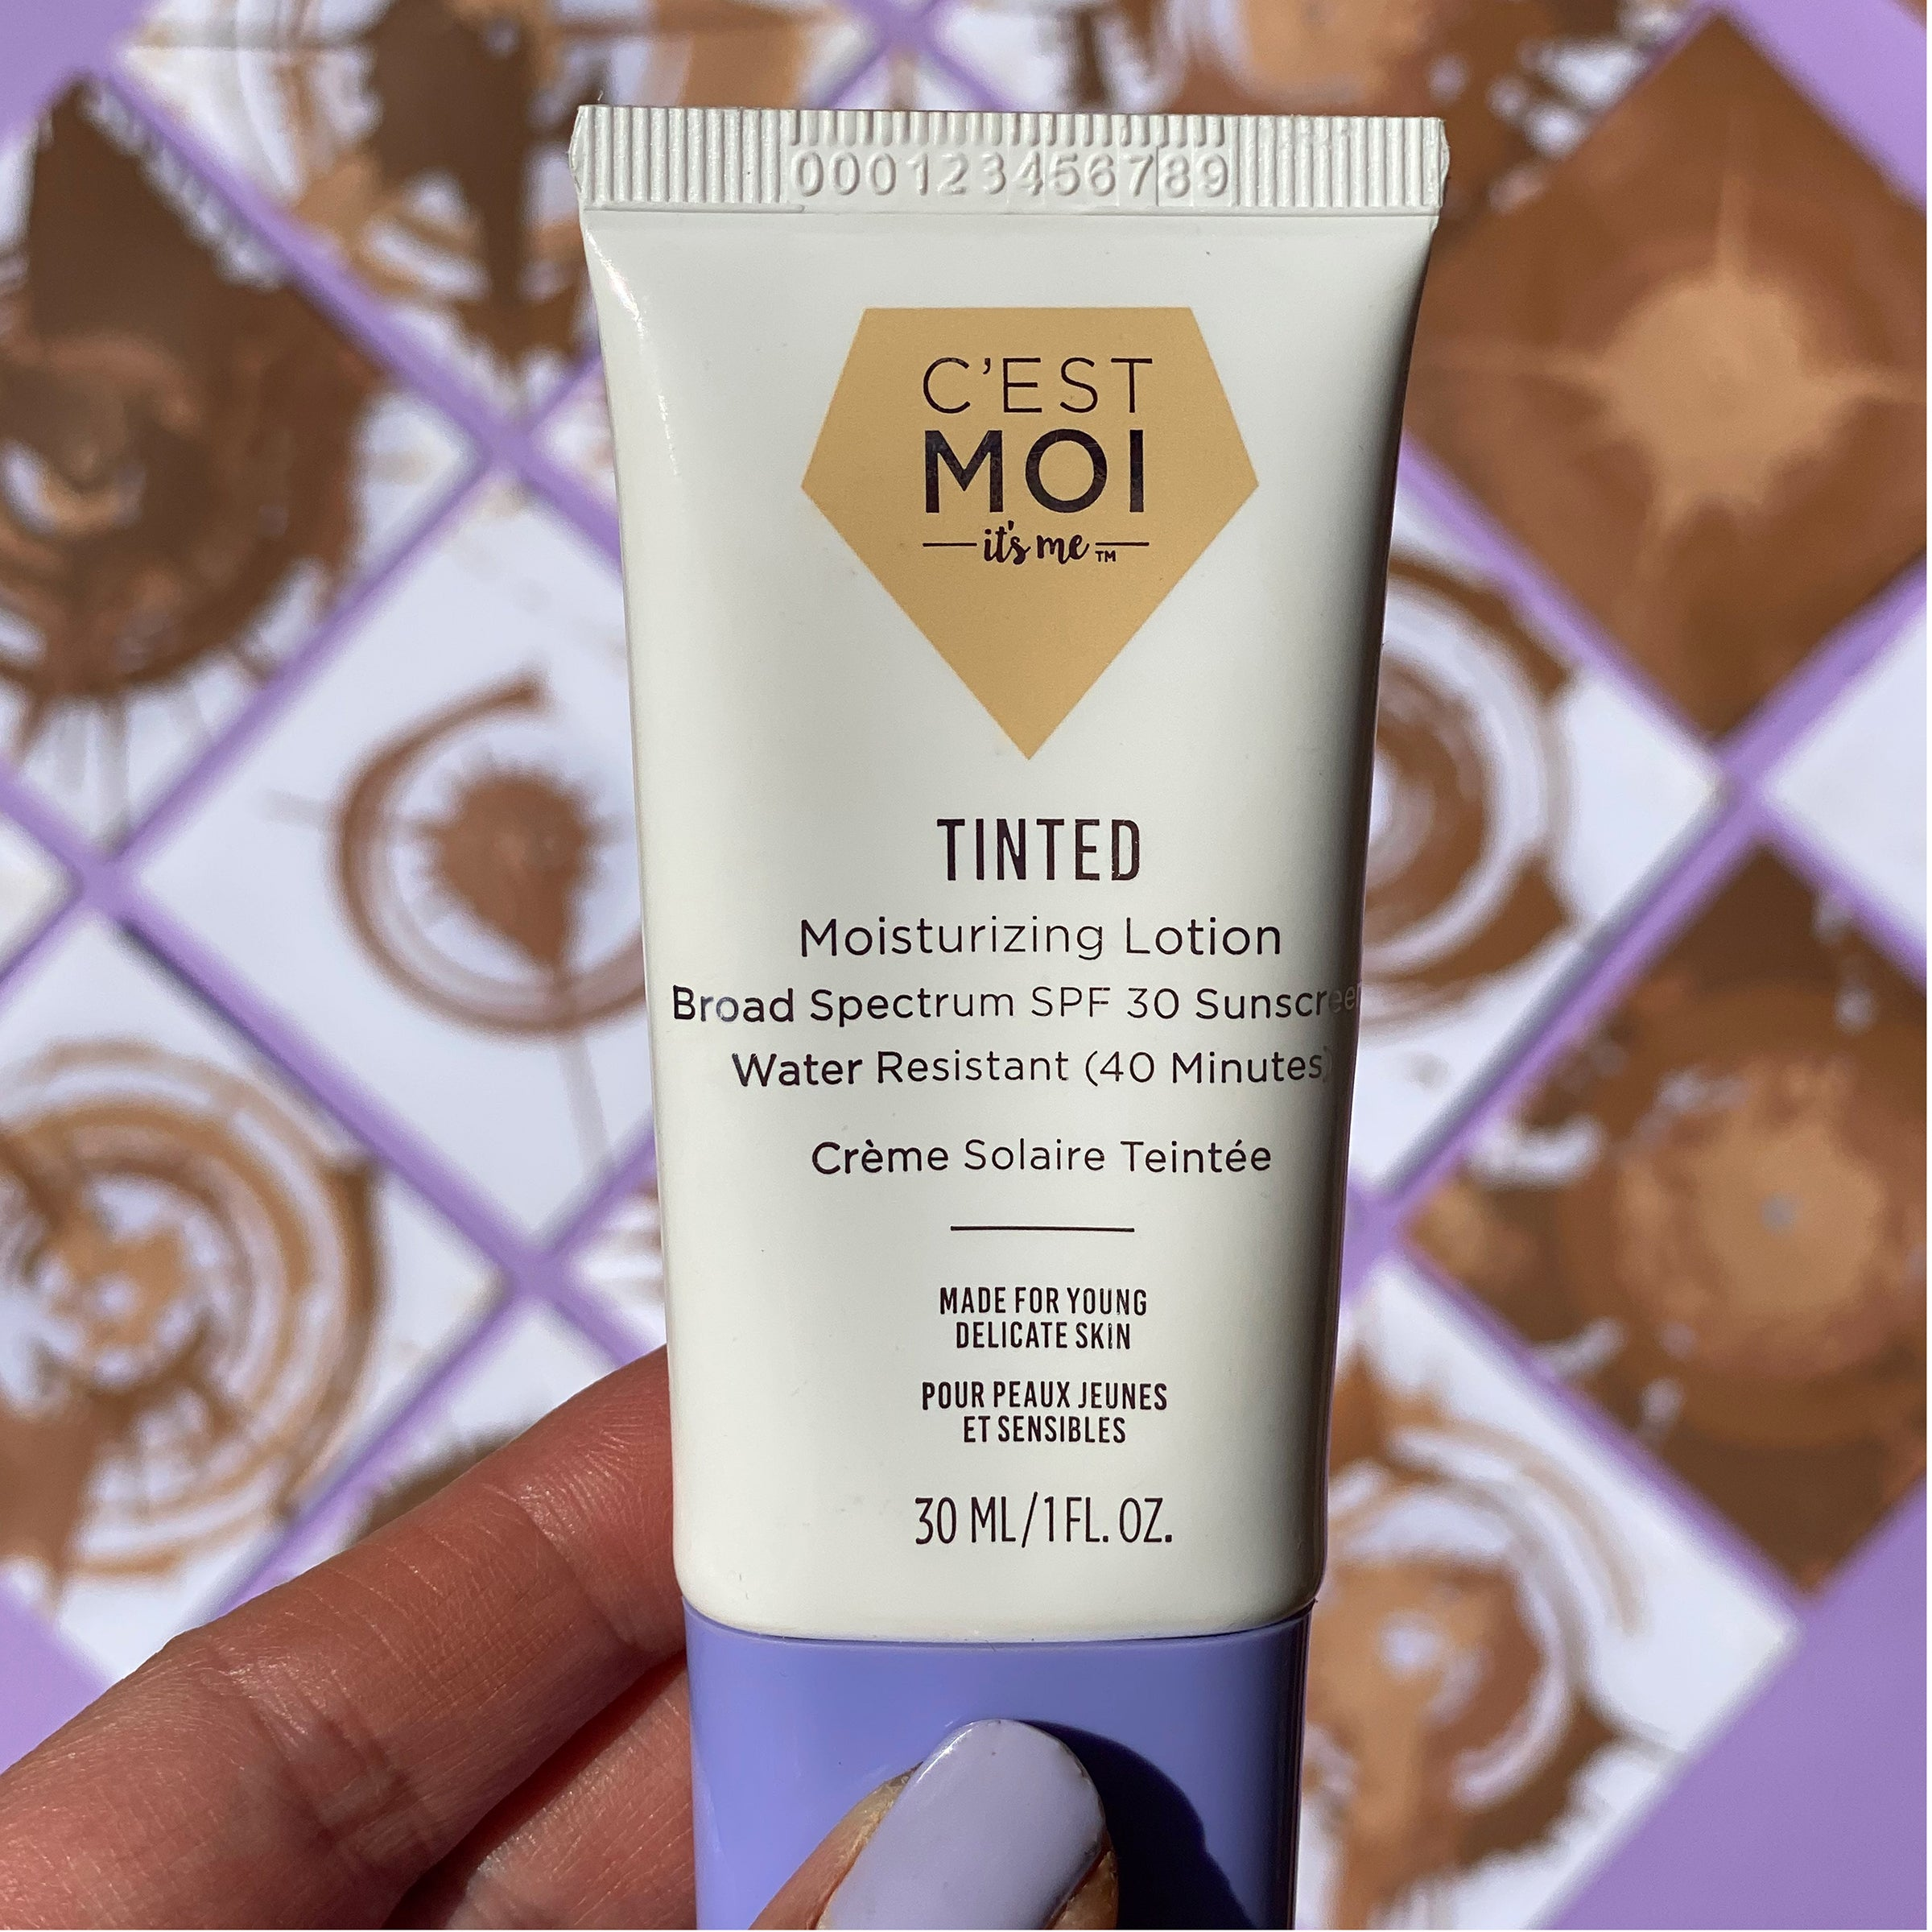 Tinted Moisturizing Lotion Broad Spectrum SPF 30 Sunscreen